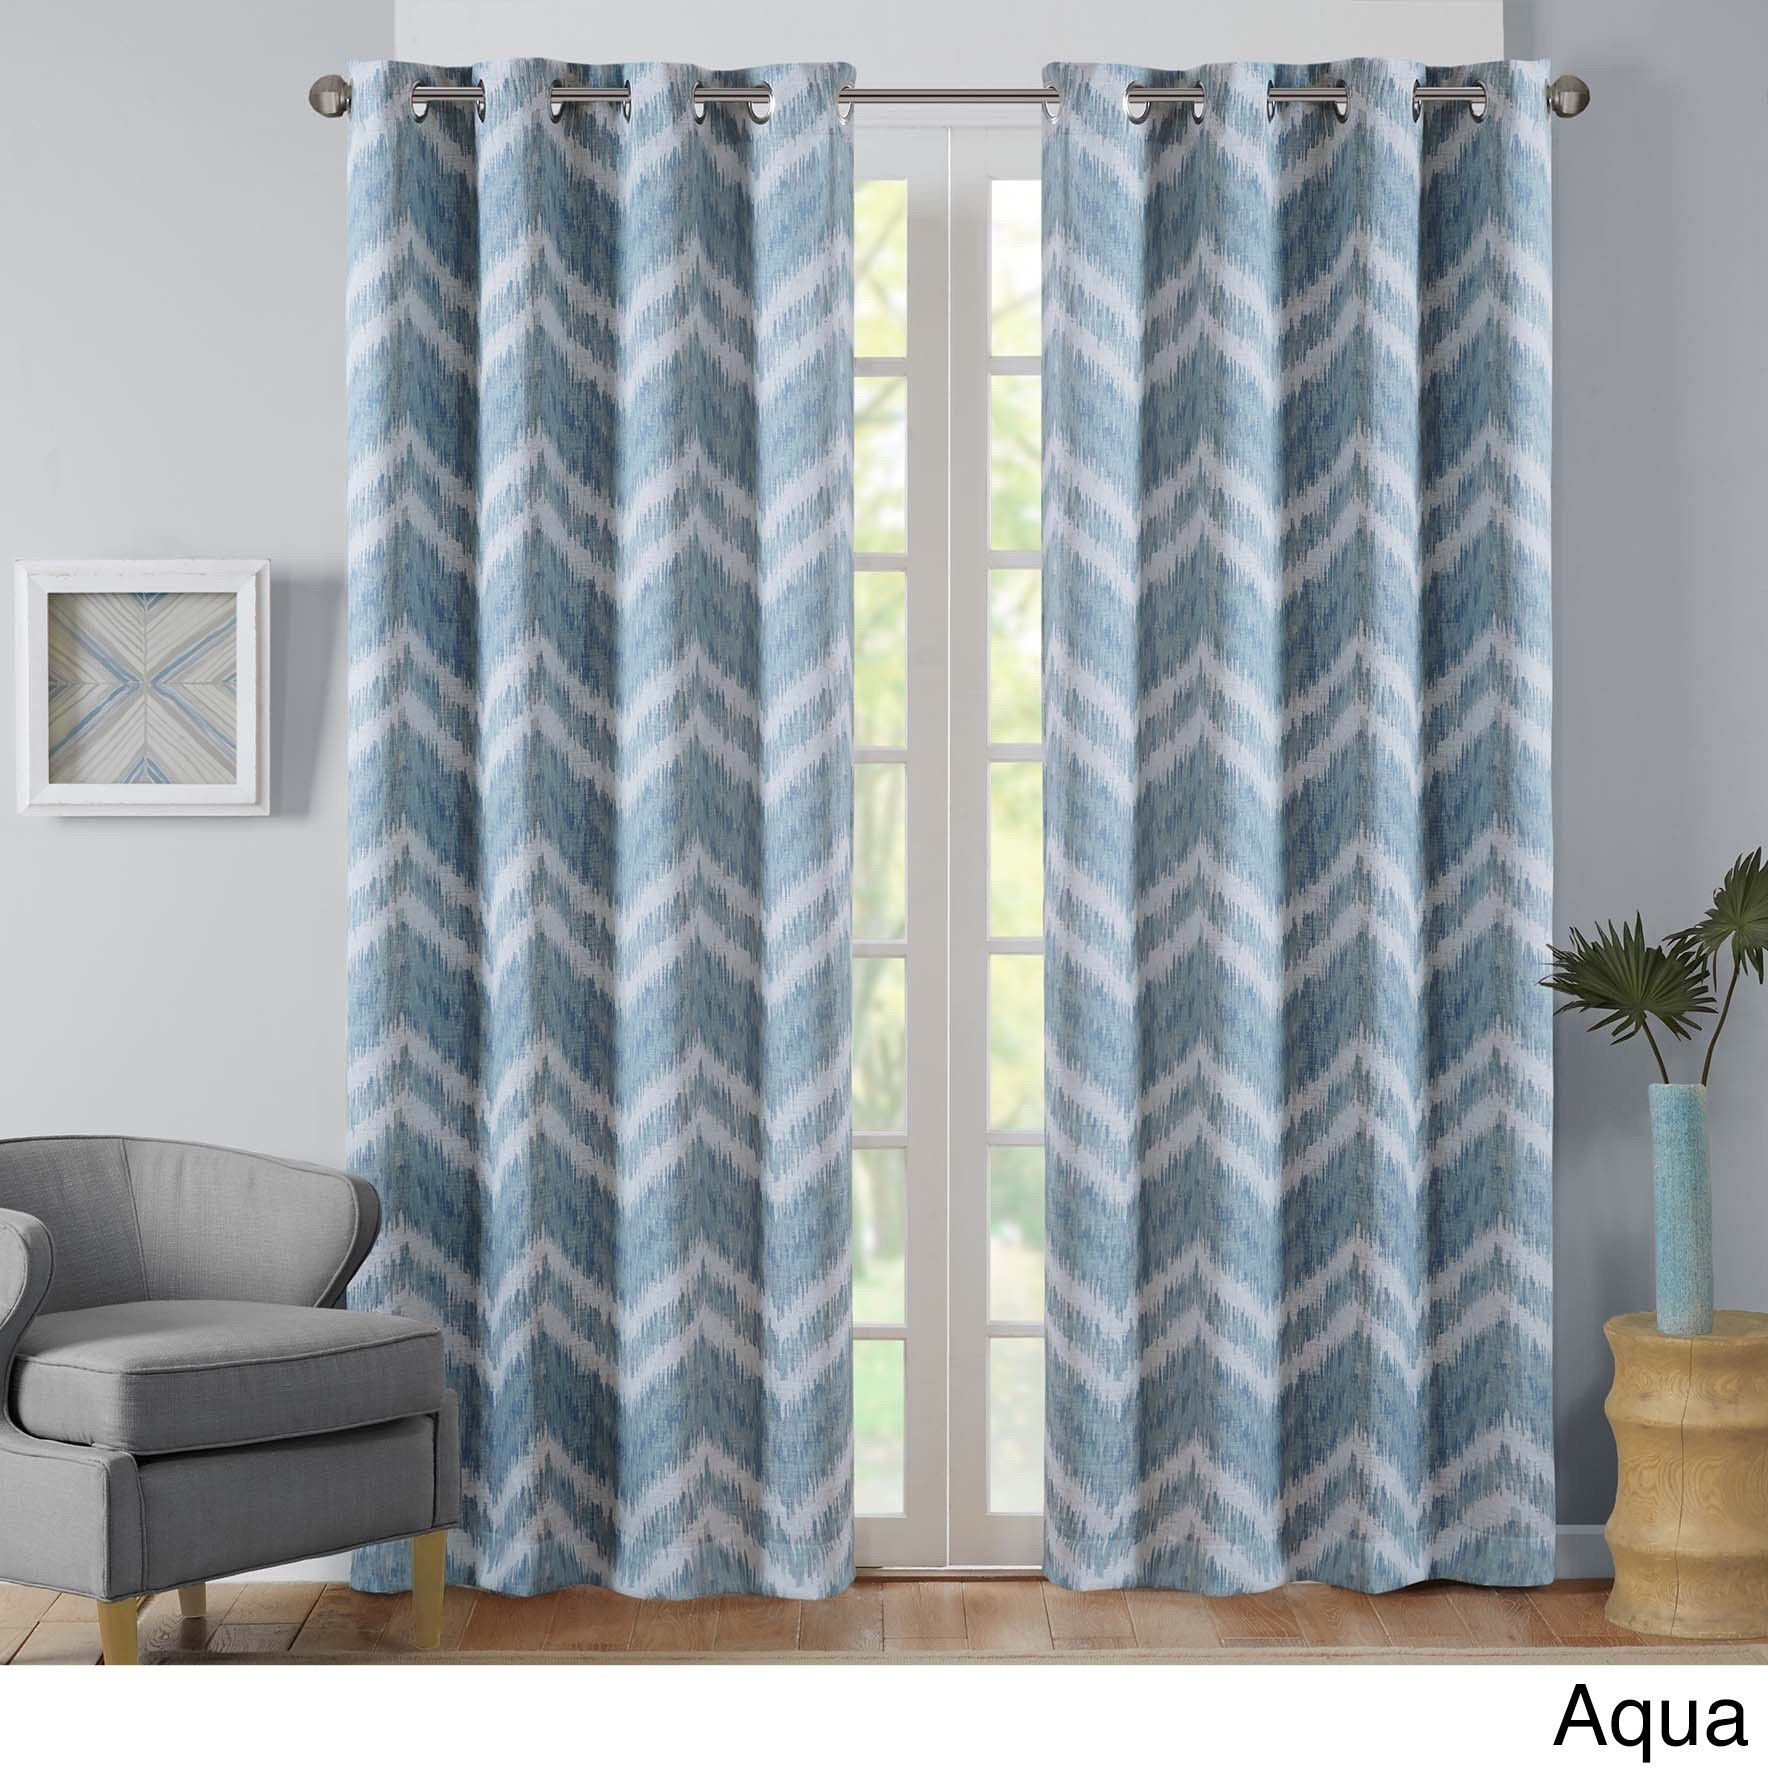 Intelligent Design Nara Ikat Printed Curtain Panel with Blackout Lining